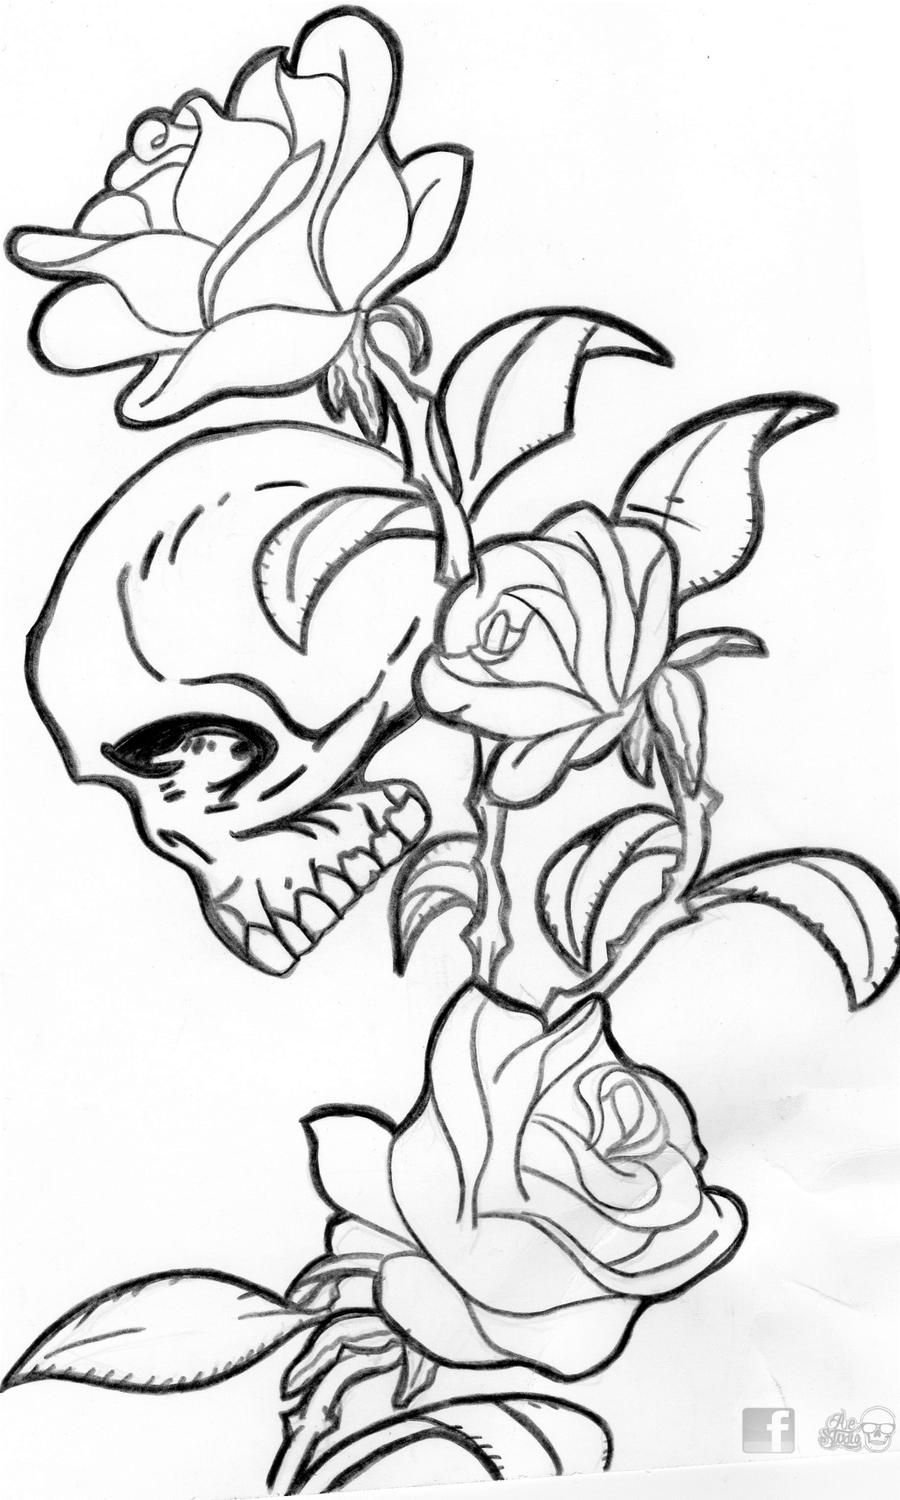 Skull and roses by aestudio90 on deviantart for Skulls and roses coloring pages